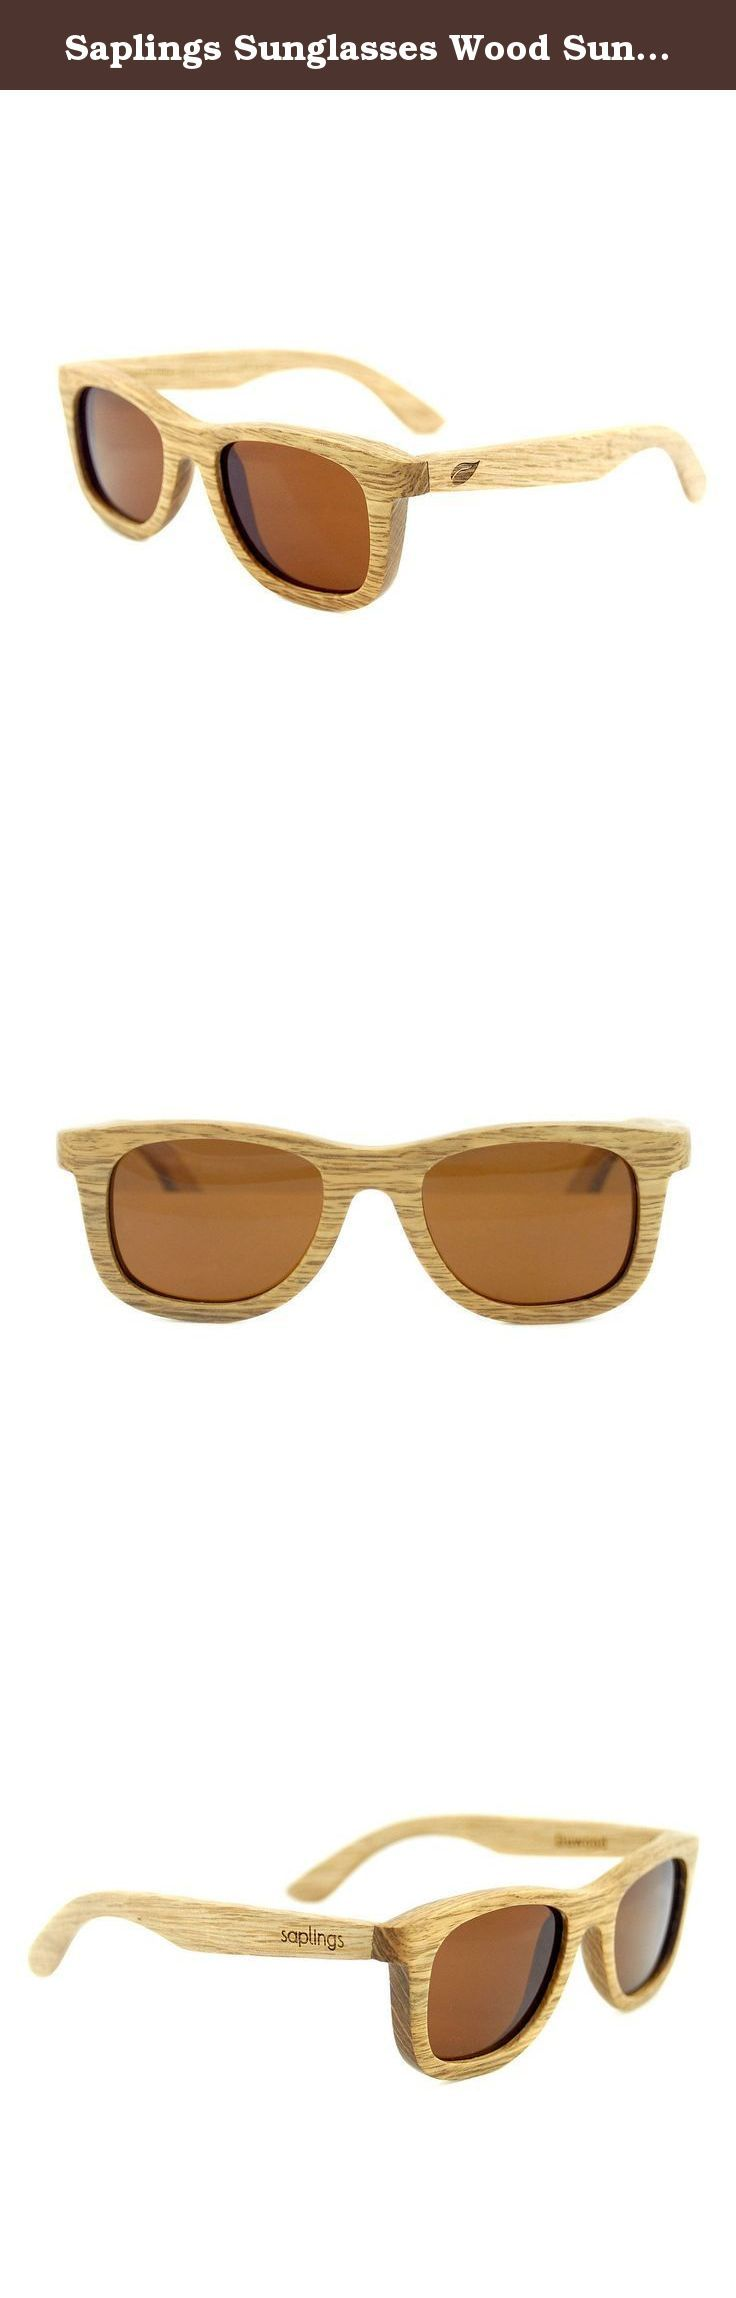 Saplings Sunglasses Wood Sunglasses for Toddlers and Kids. These are the very first wood sunglasses for kids ever made. Seriously. This is the original kids wood sunglasses. These wood sunglasses for kids and toddlers are made with the classic wayfarer shape. They are made from Duwood and come fitted with polarized UV 400 lenses to protect your children and toddlers eyes from the sun. This means that your children and toddlers can spend more time in the sun with these wood sunglasses for...